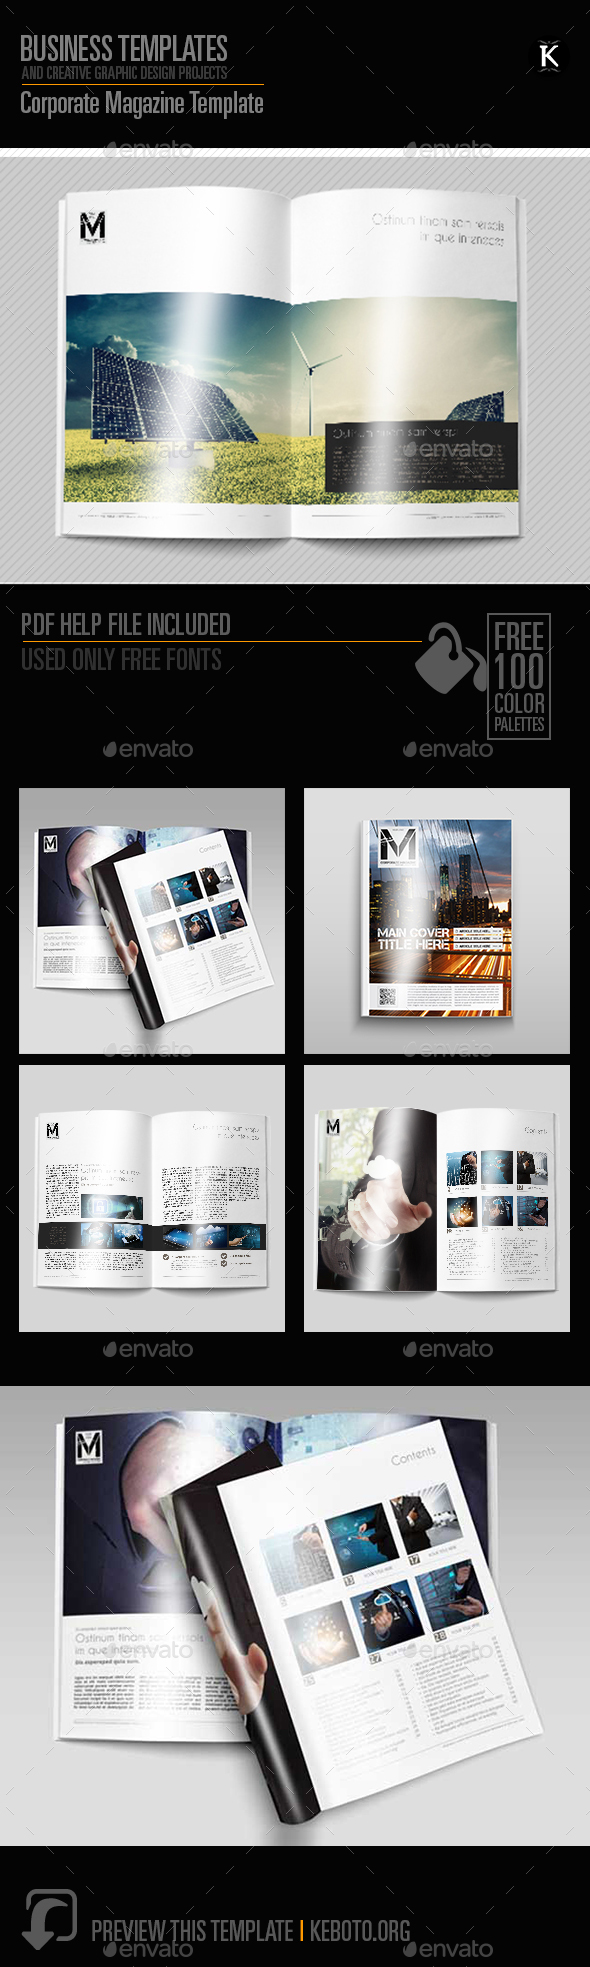 Corporate Magazine Template - Magazines Print Templates